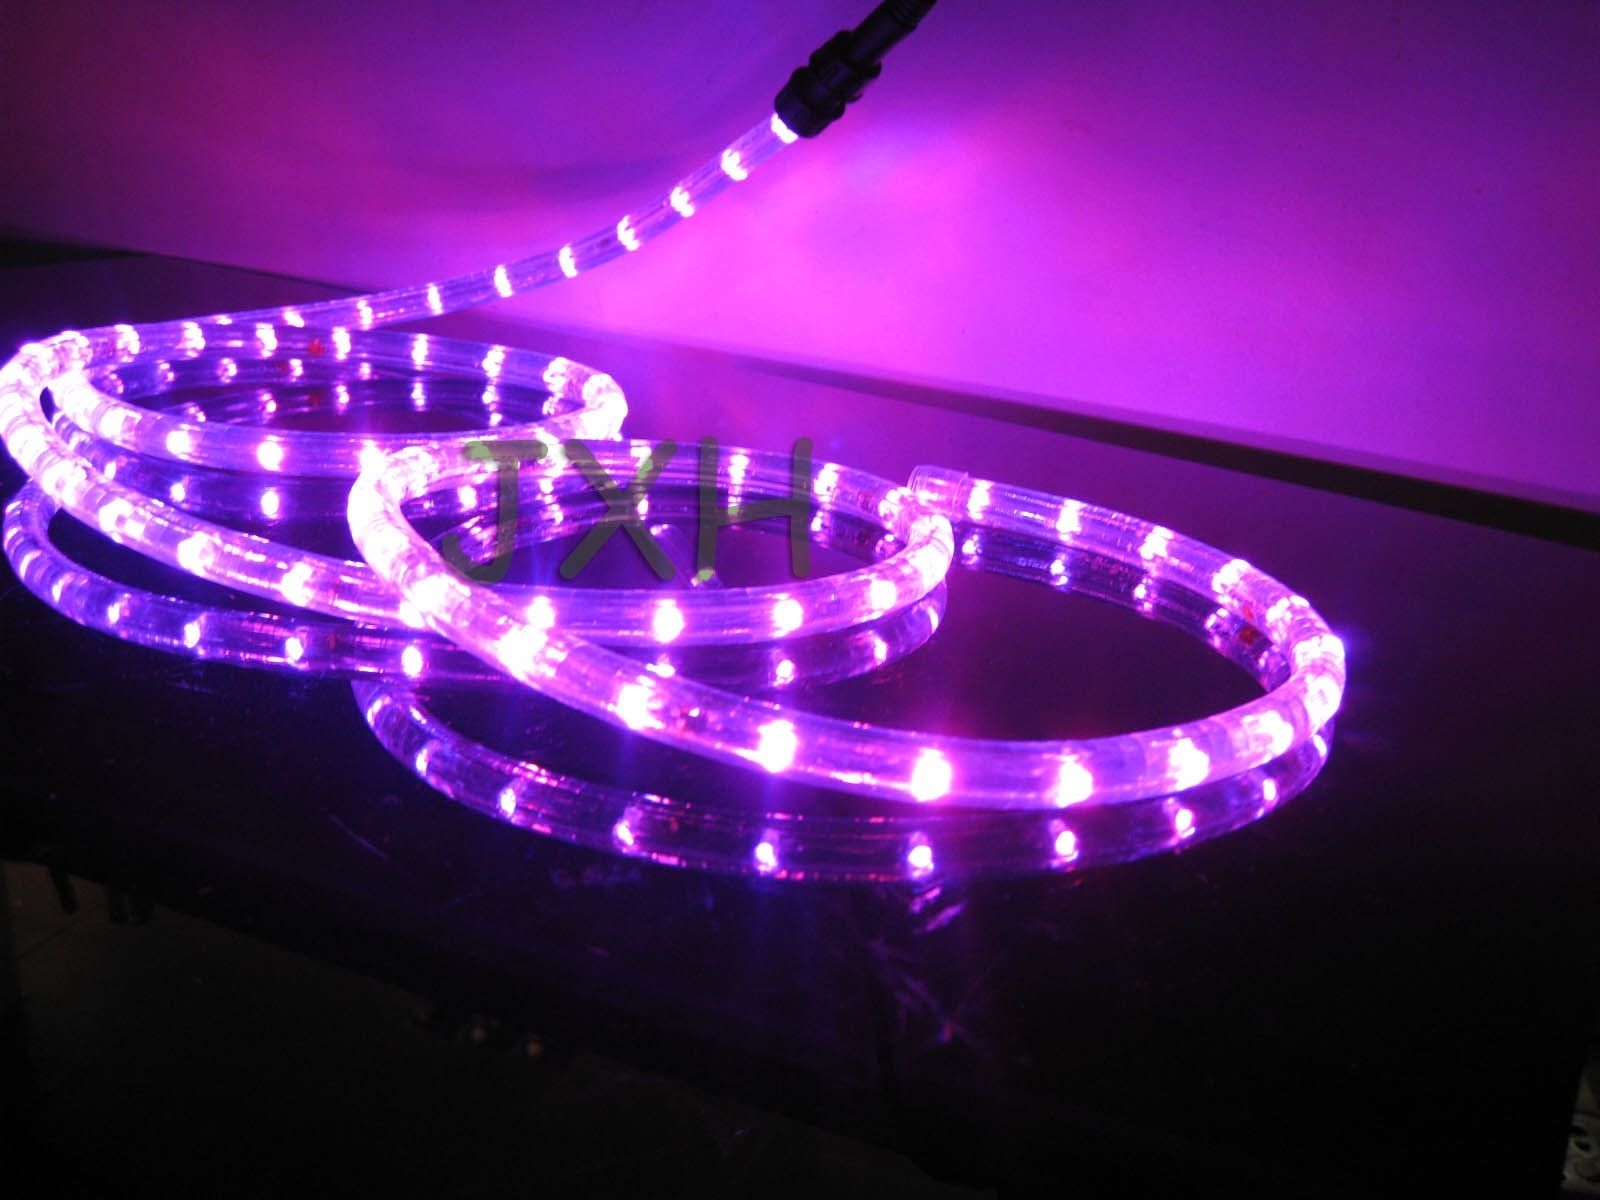 Led Rope Lights Home Depot Glamorous Bedroom Light Feminine Led Rope Light Exterior Led Rope Light Inspiration